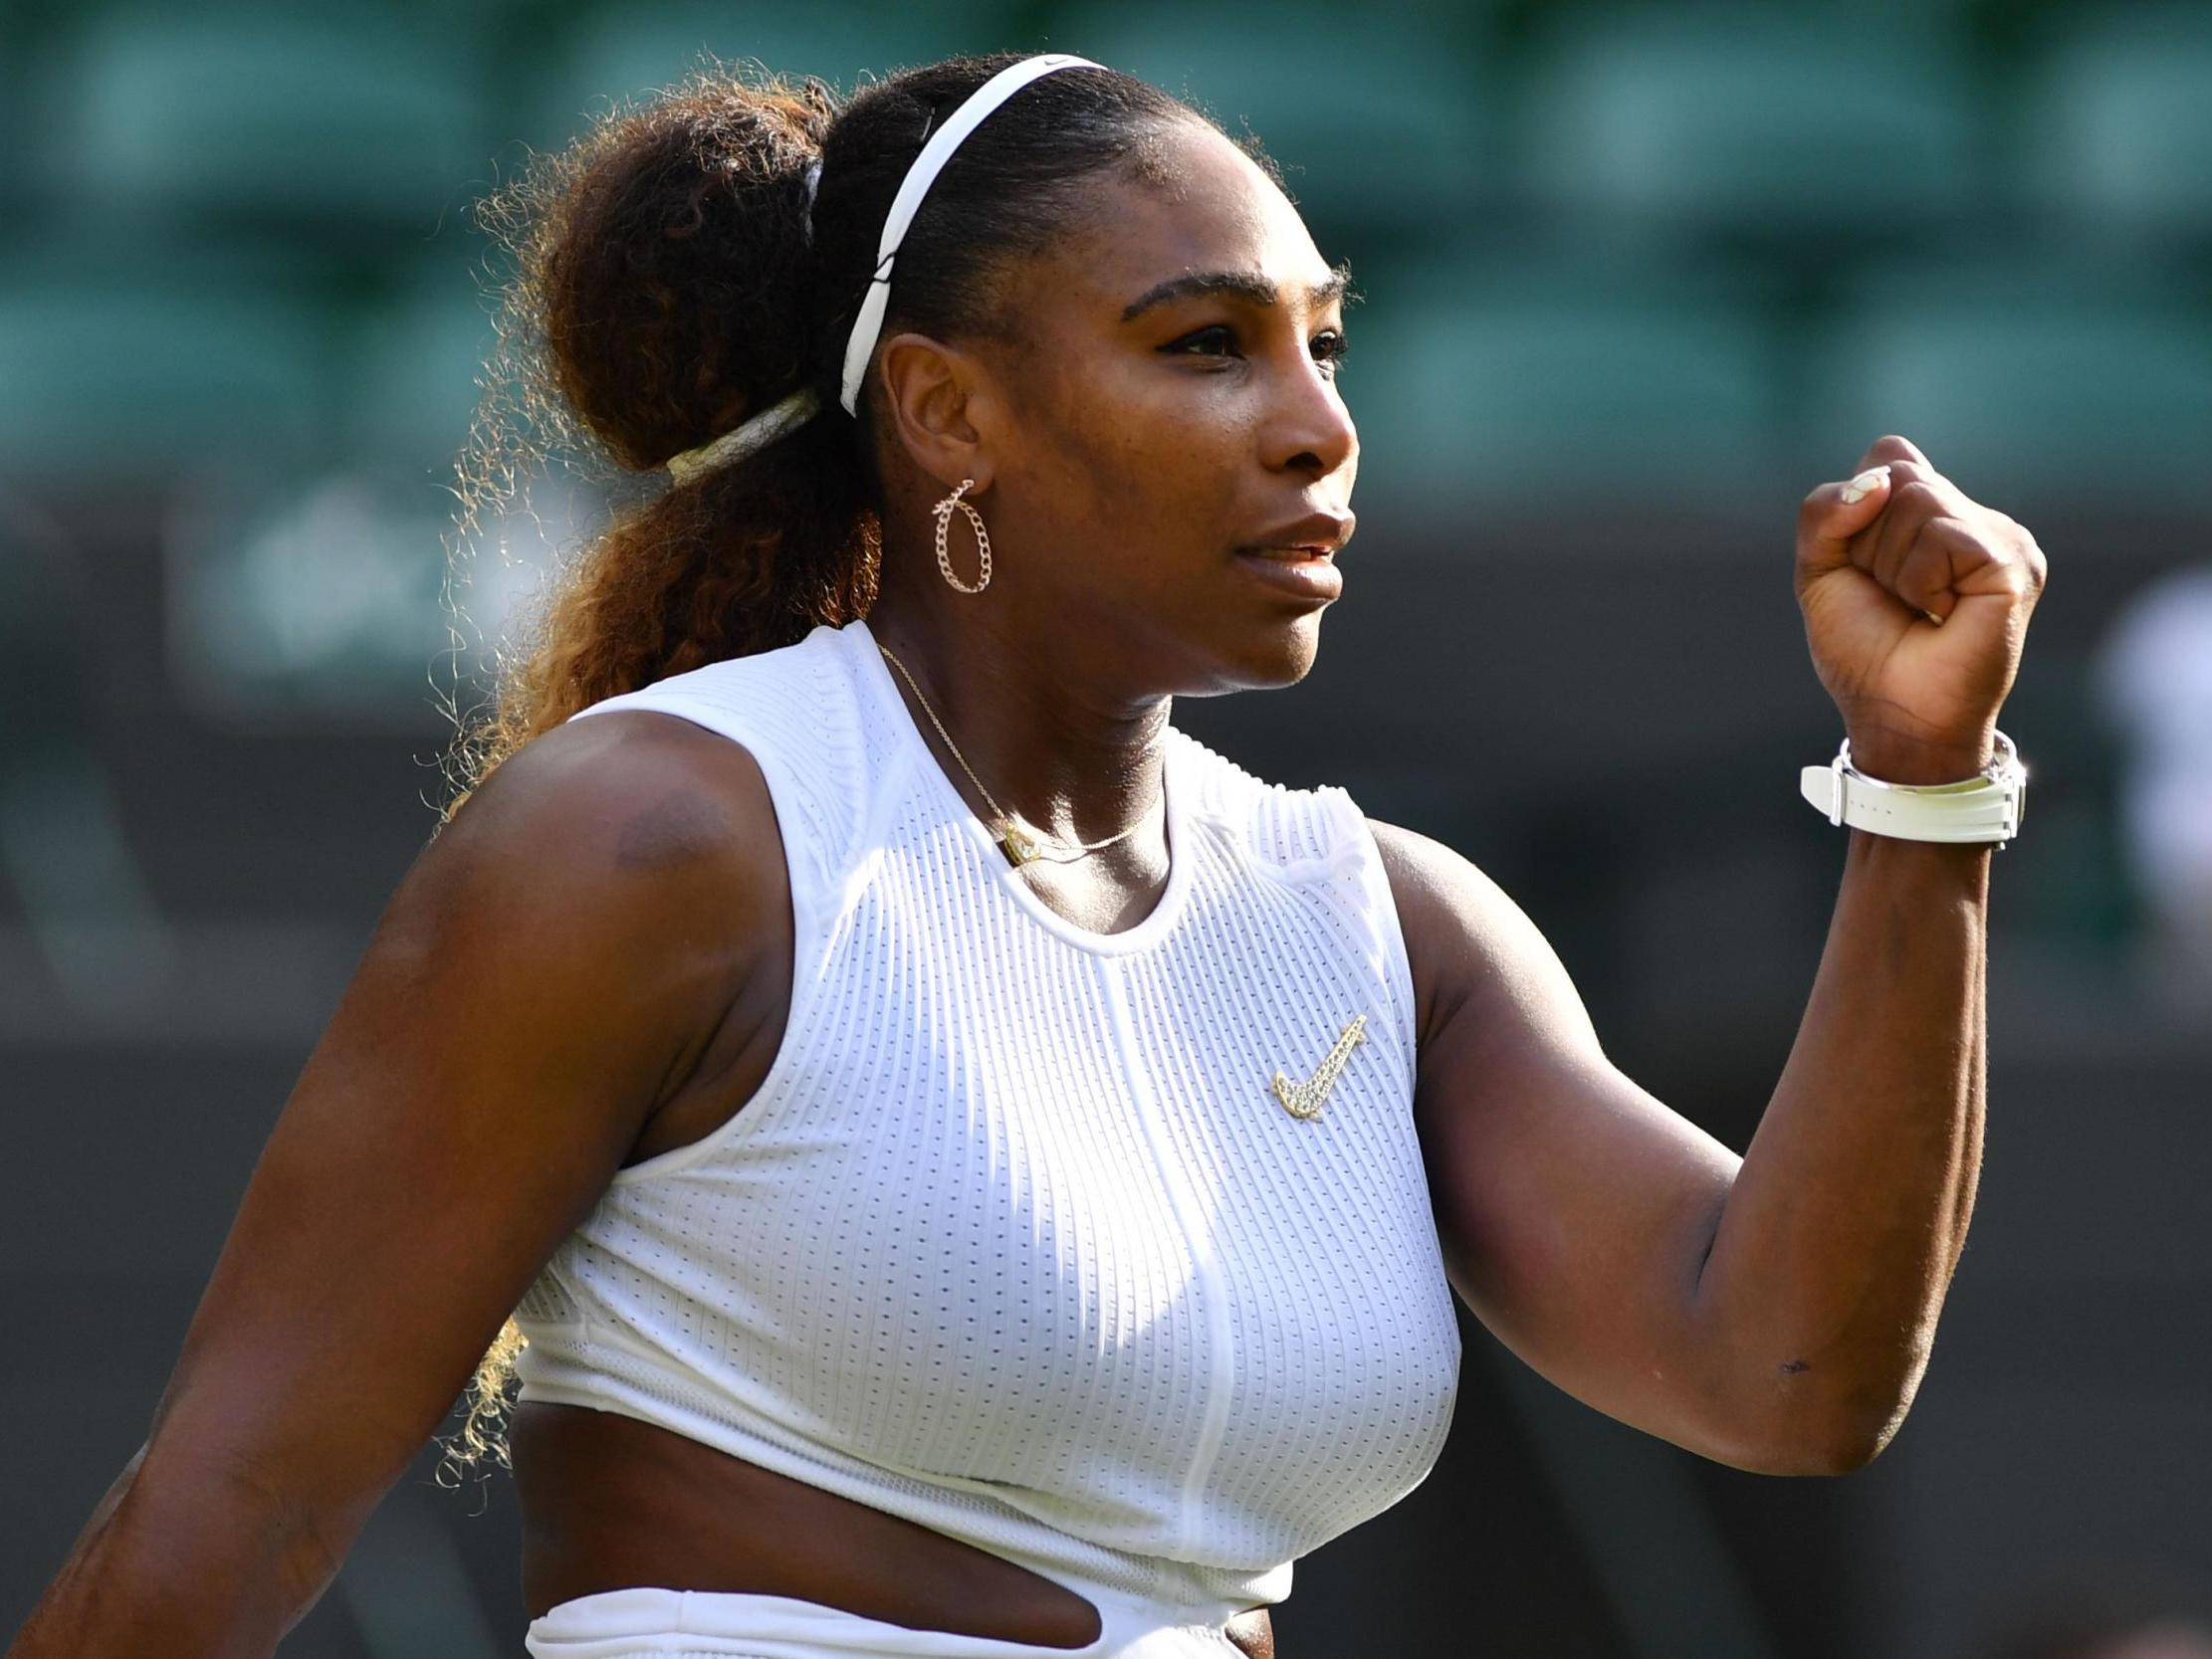 Serena Williams revealed as highest-paid female athlete for fourth year in a row